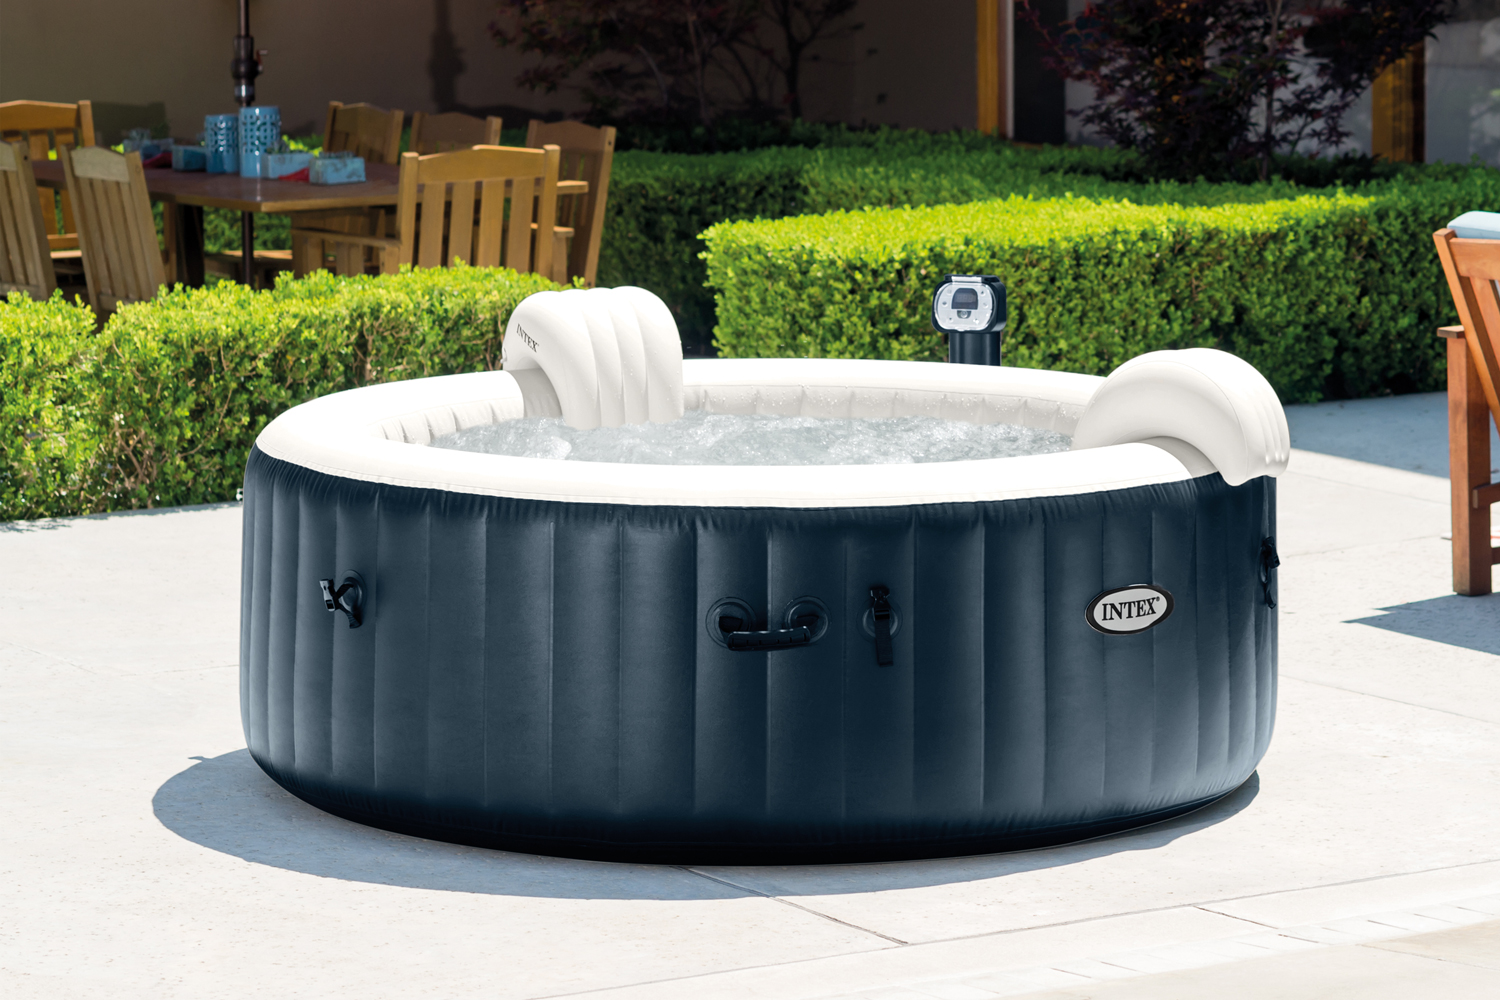 intex pure spa 6 person inflatable portable heated bubble hot tub model 28409e ebay. Black Bedroom Furniture Sets. Home Design Ideas